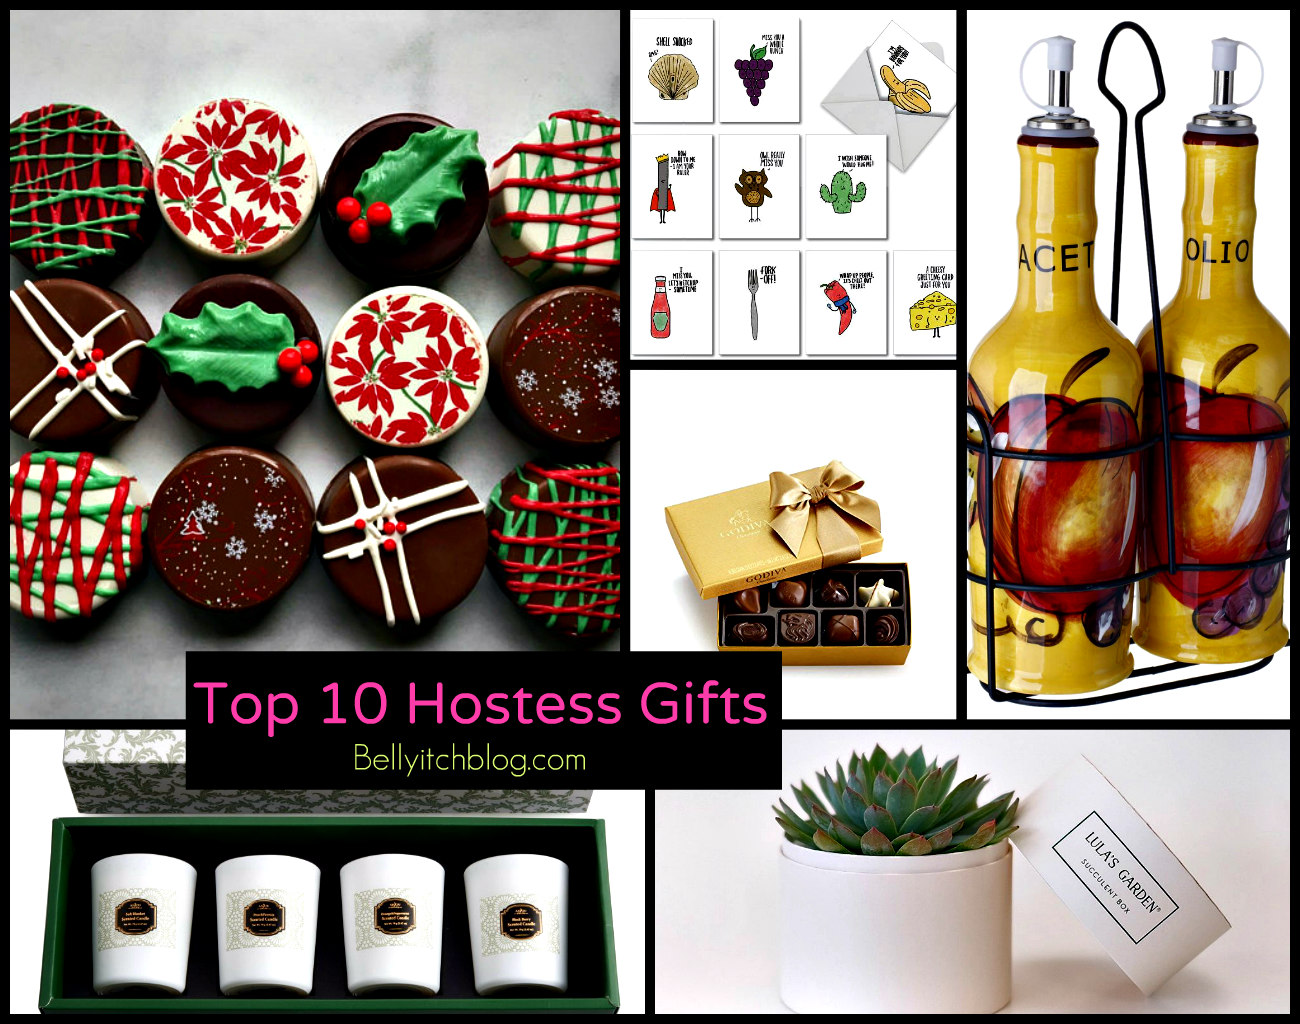 Get Last Minute Holiday Shopping Ideas with These Gift Guides